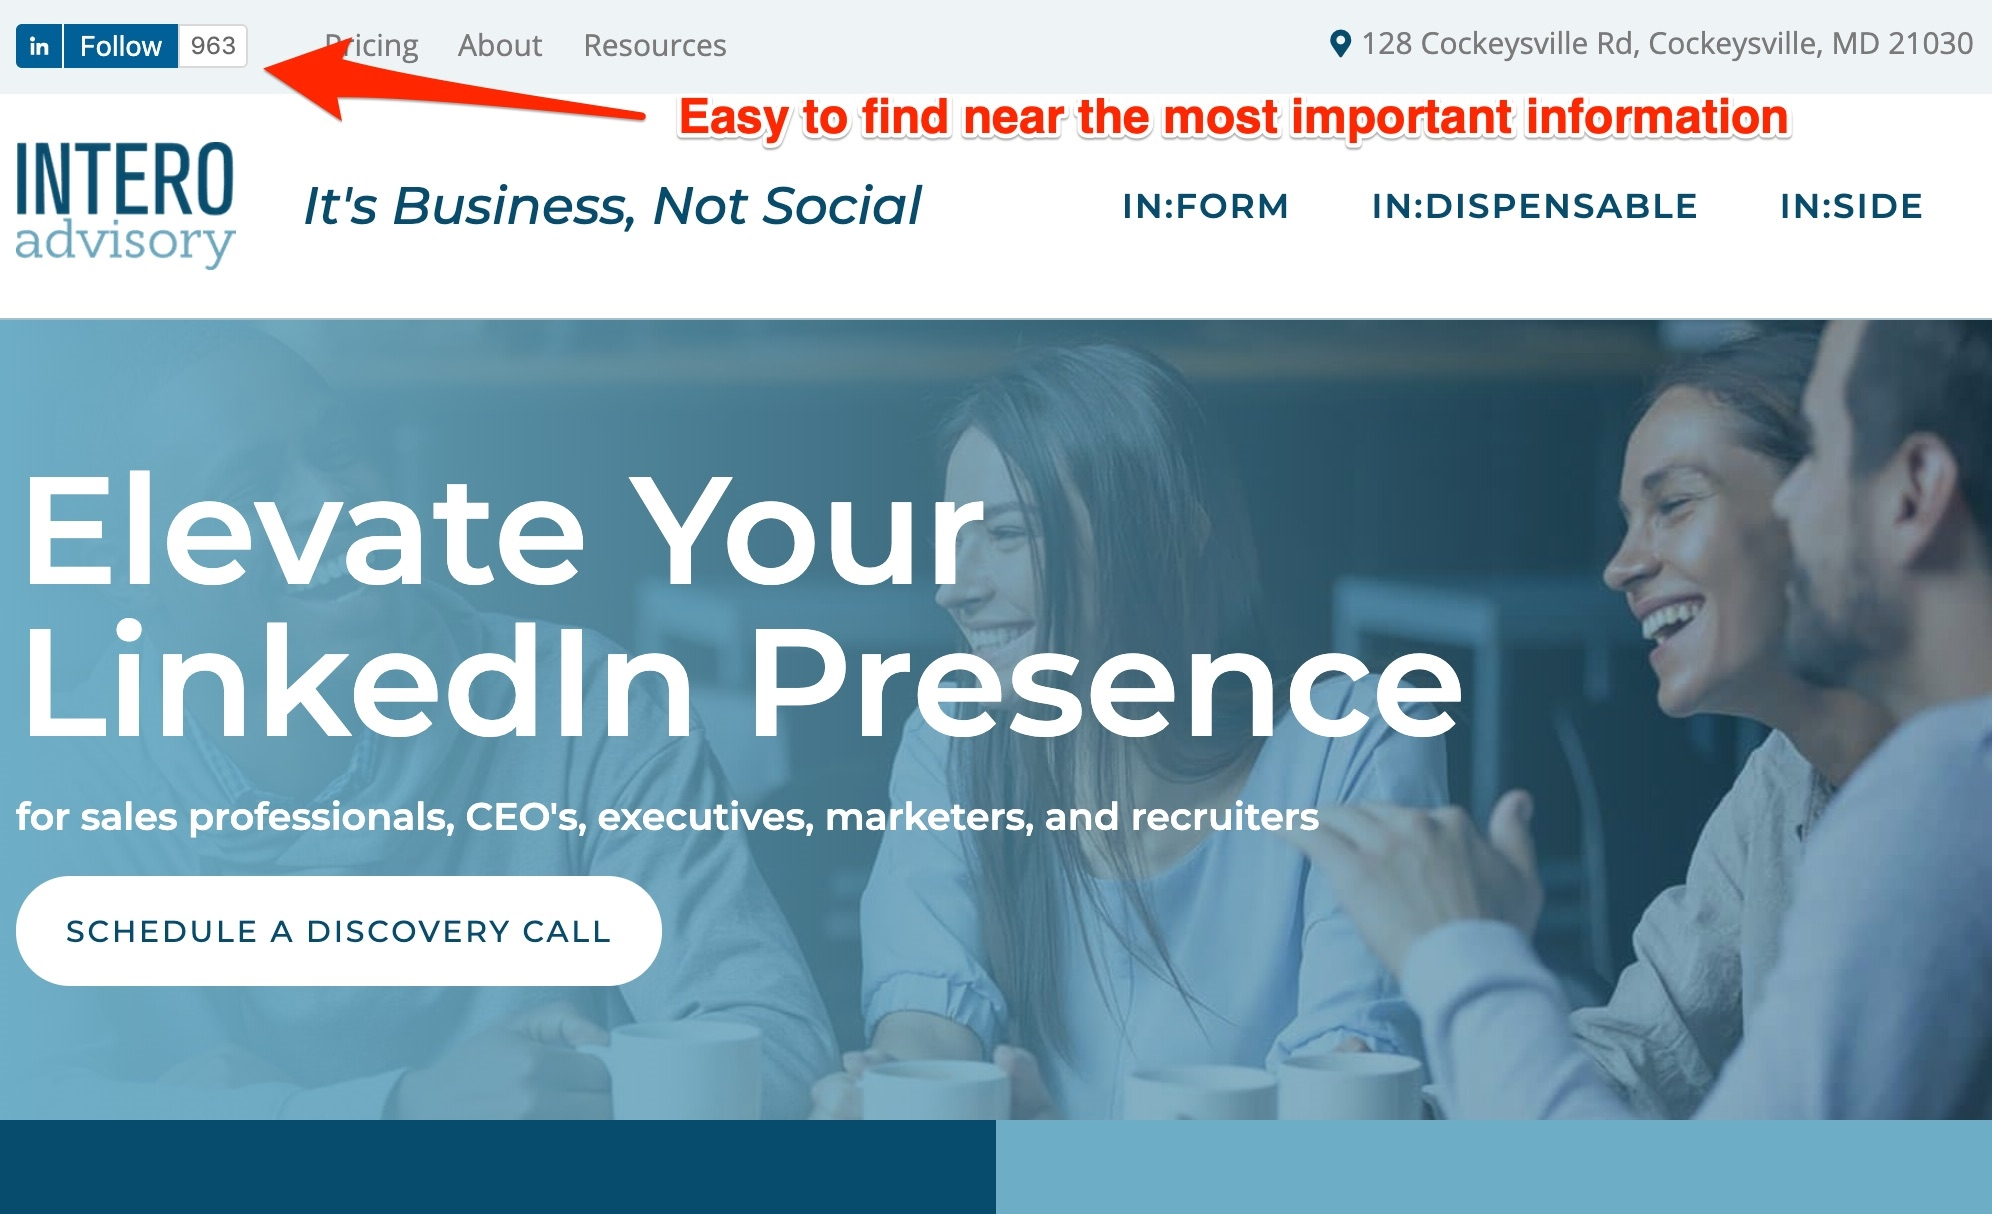 Add a LinkedIn Company Page Follow Button to Your Website